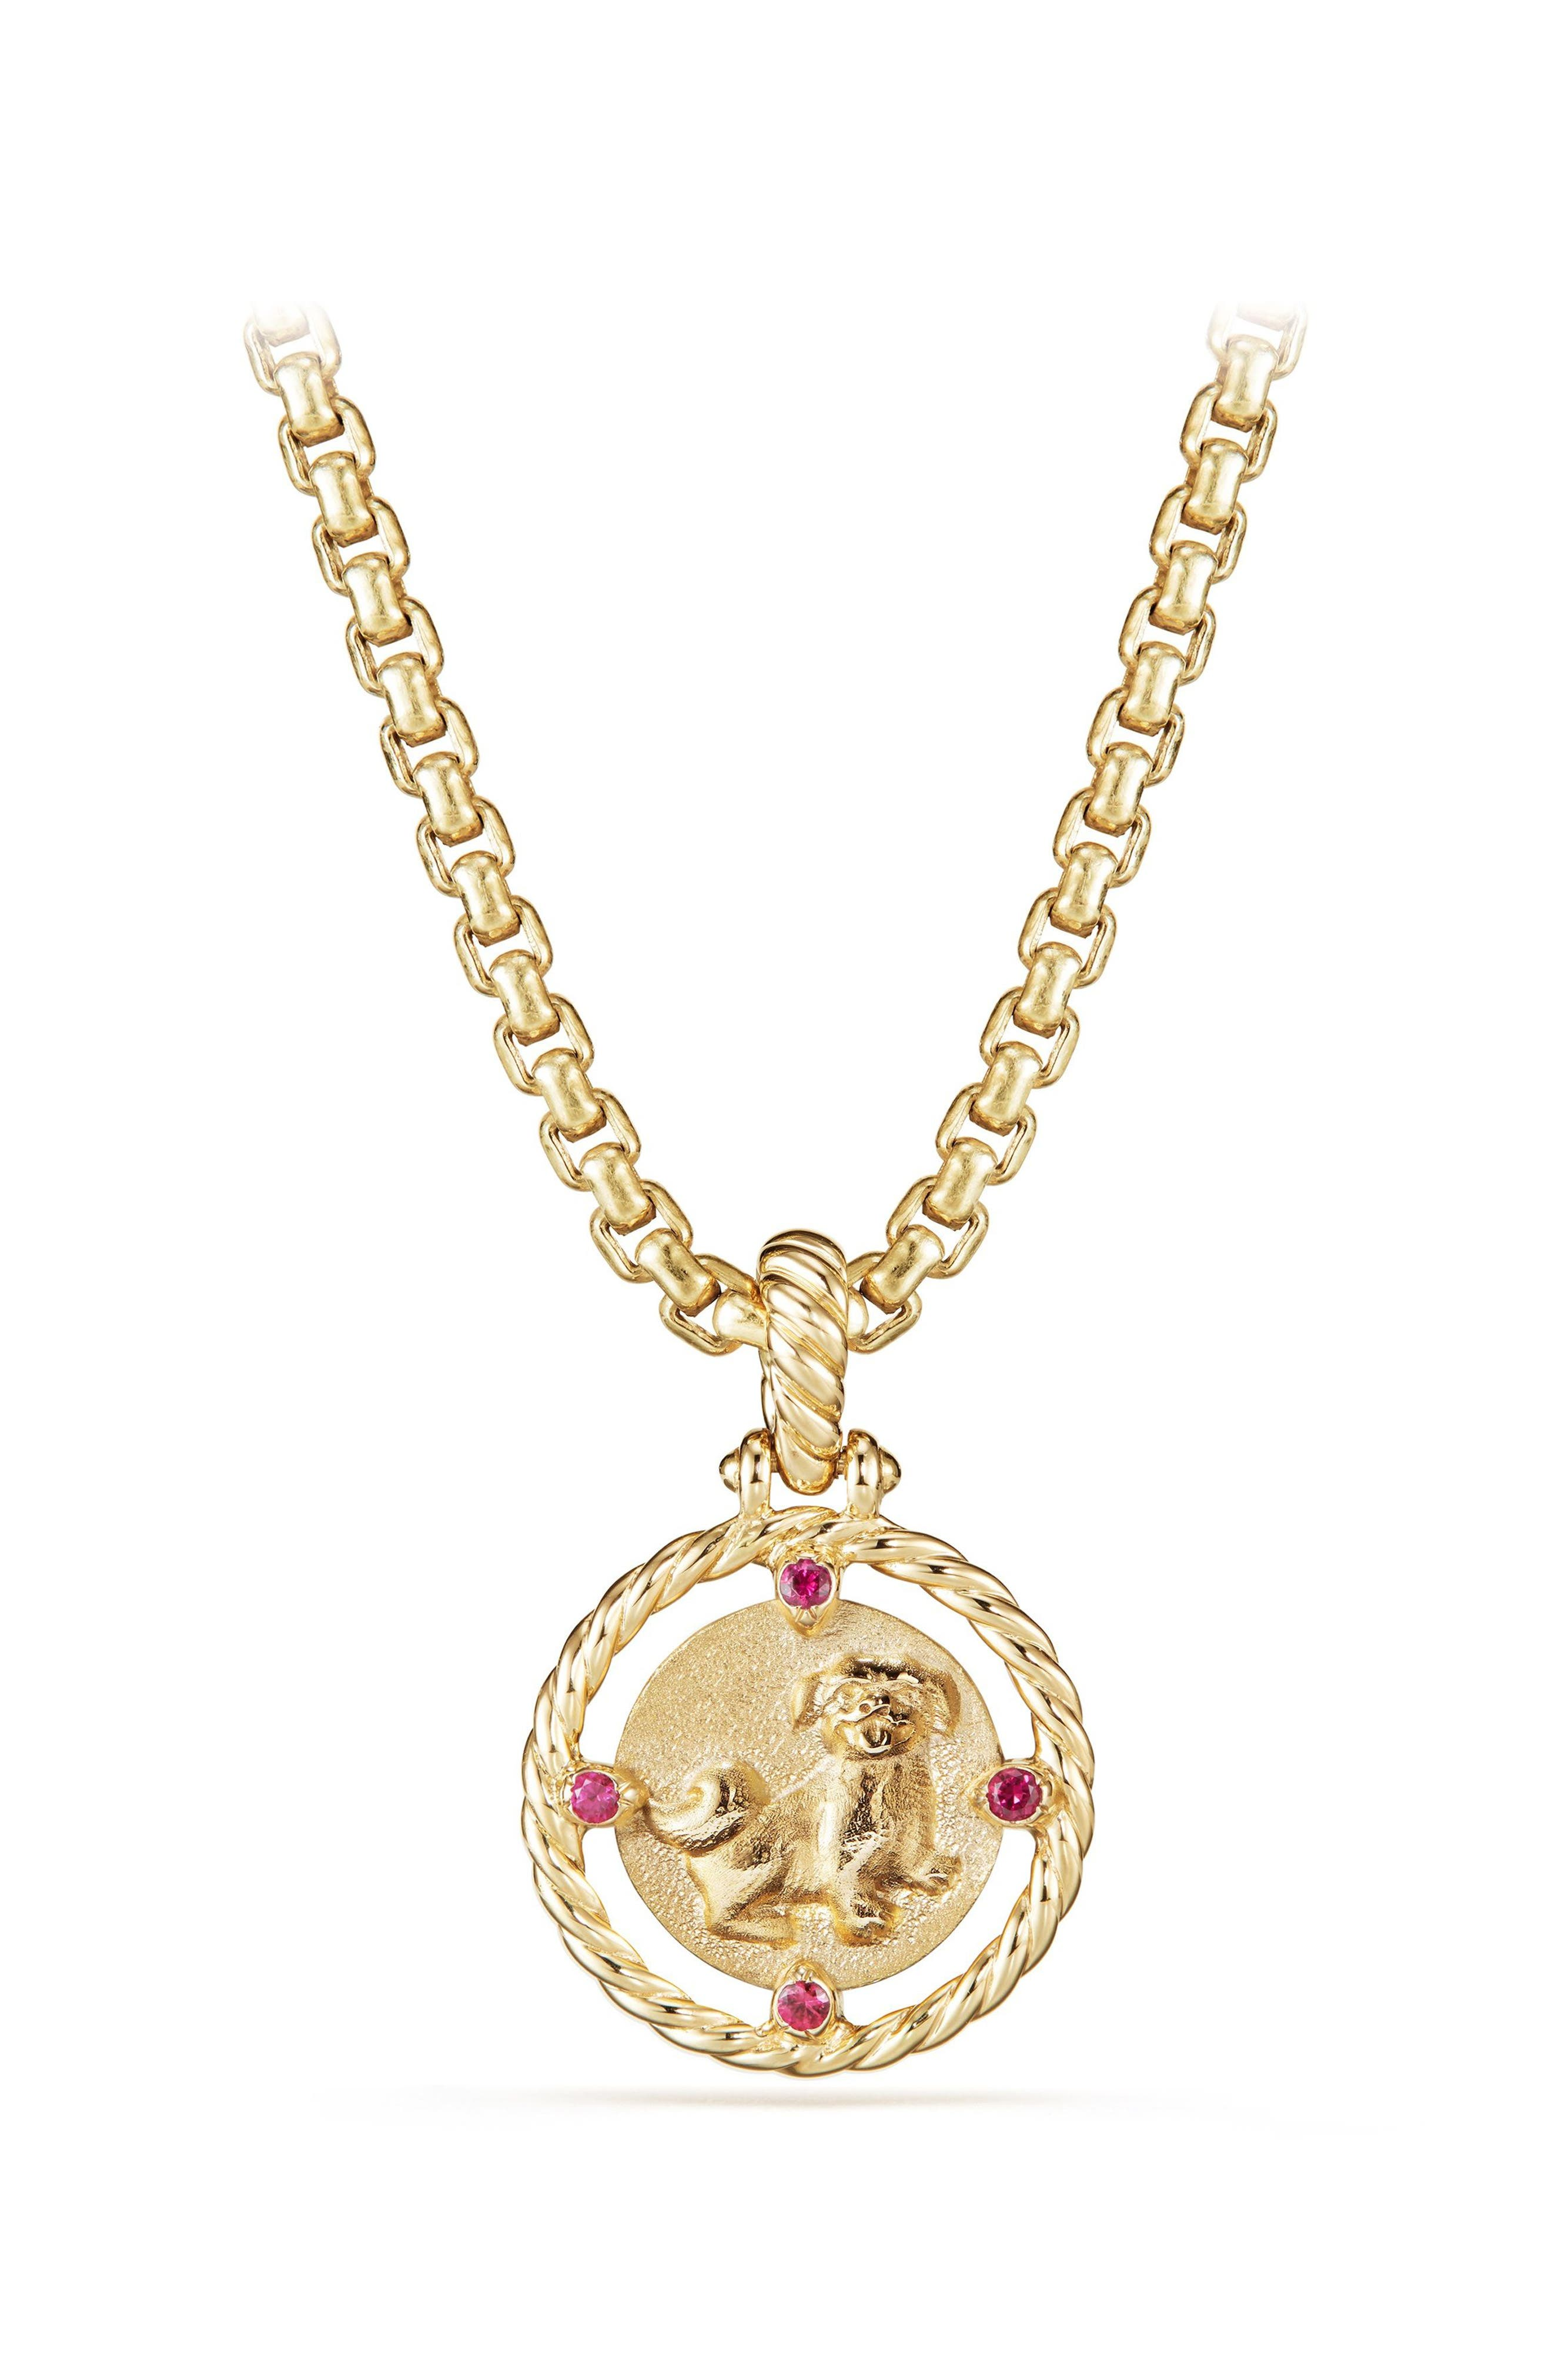 Lunar New Year Charm in 18K Gold with Rubies,                         Main,                         color, 710